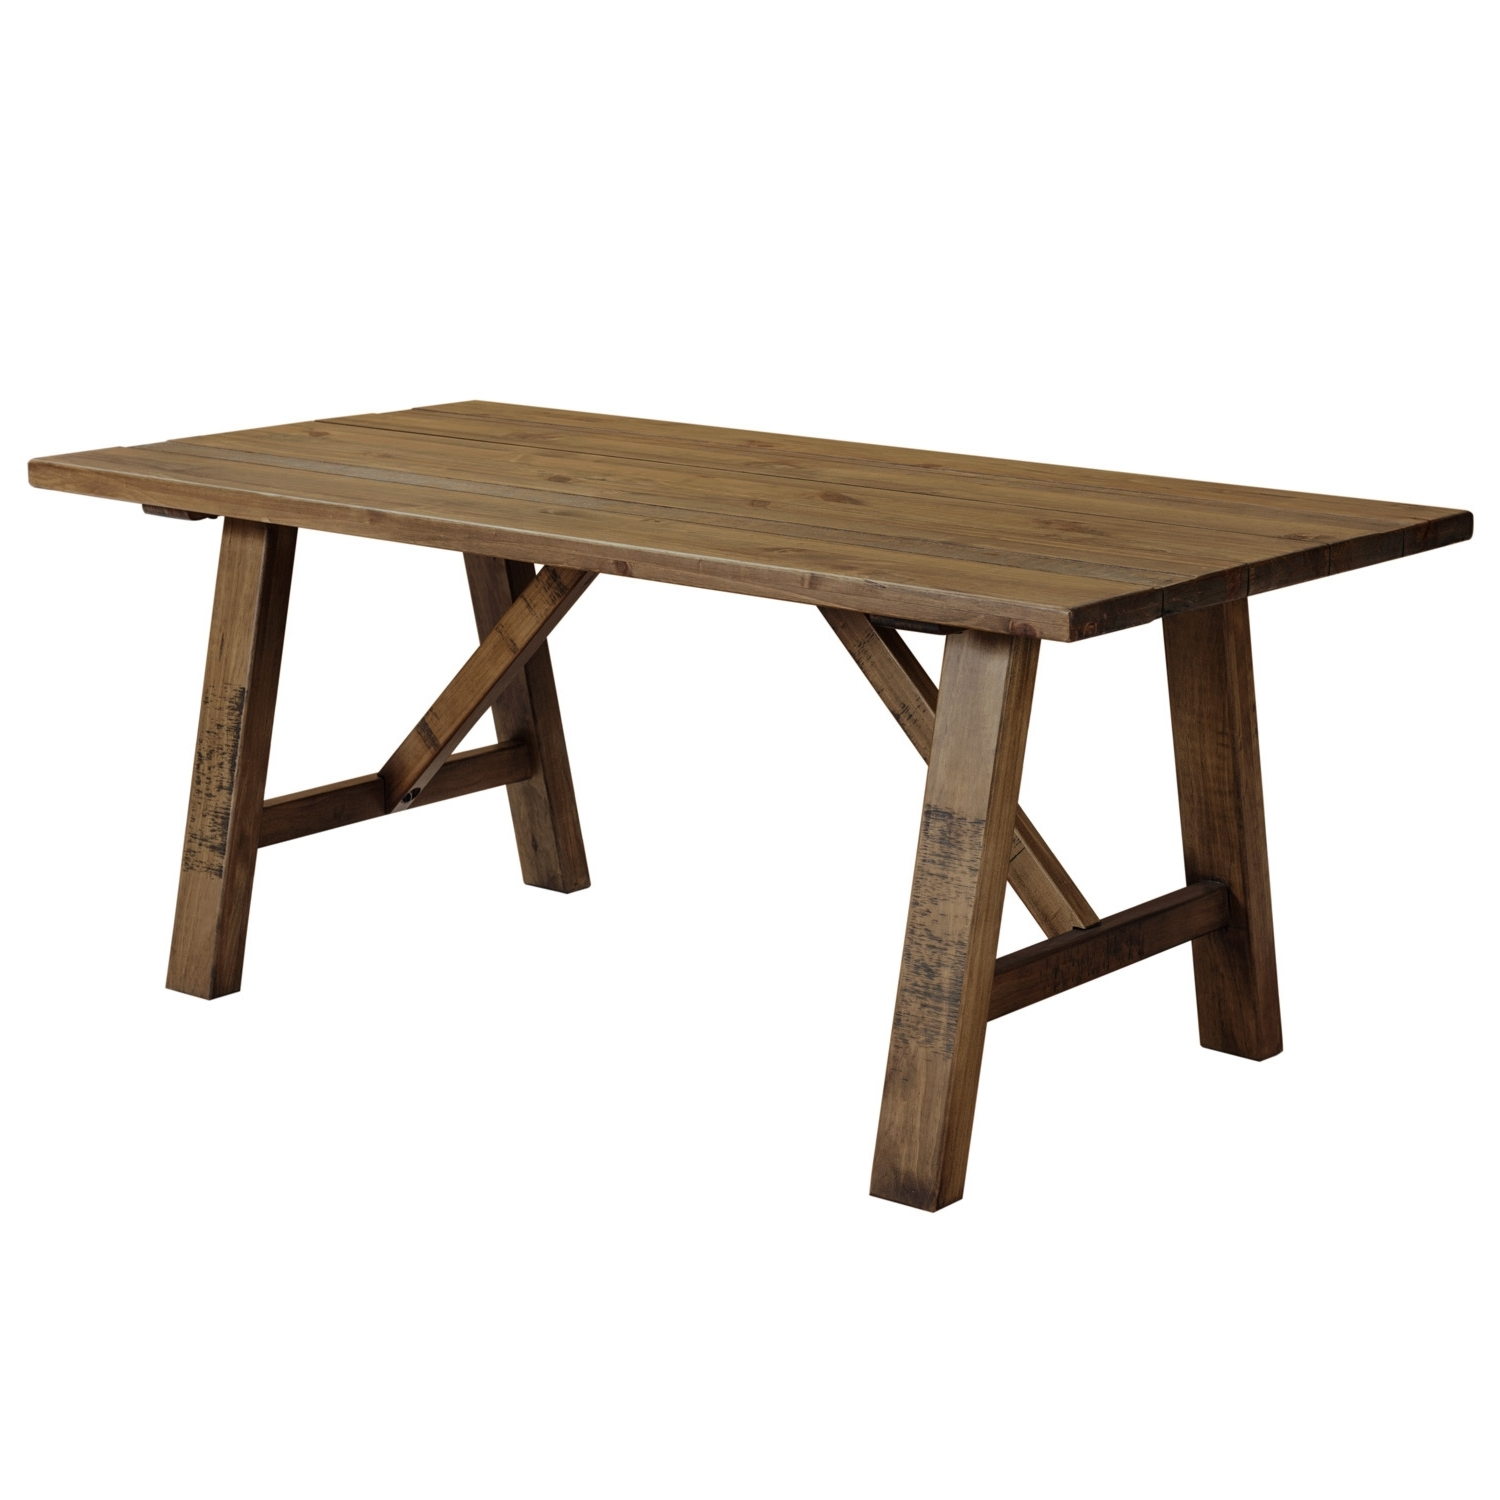 Cotswold Rustic Trestle Dining Table With Regard To Most Recent Cotswold Dining Tables (View 8 of 25)